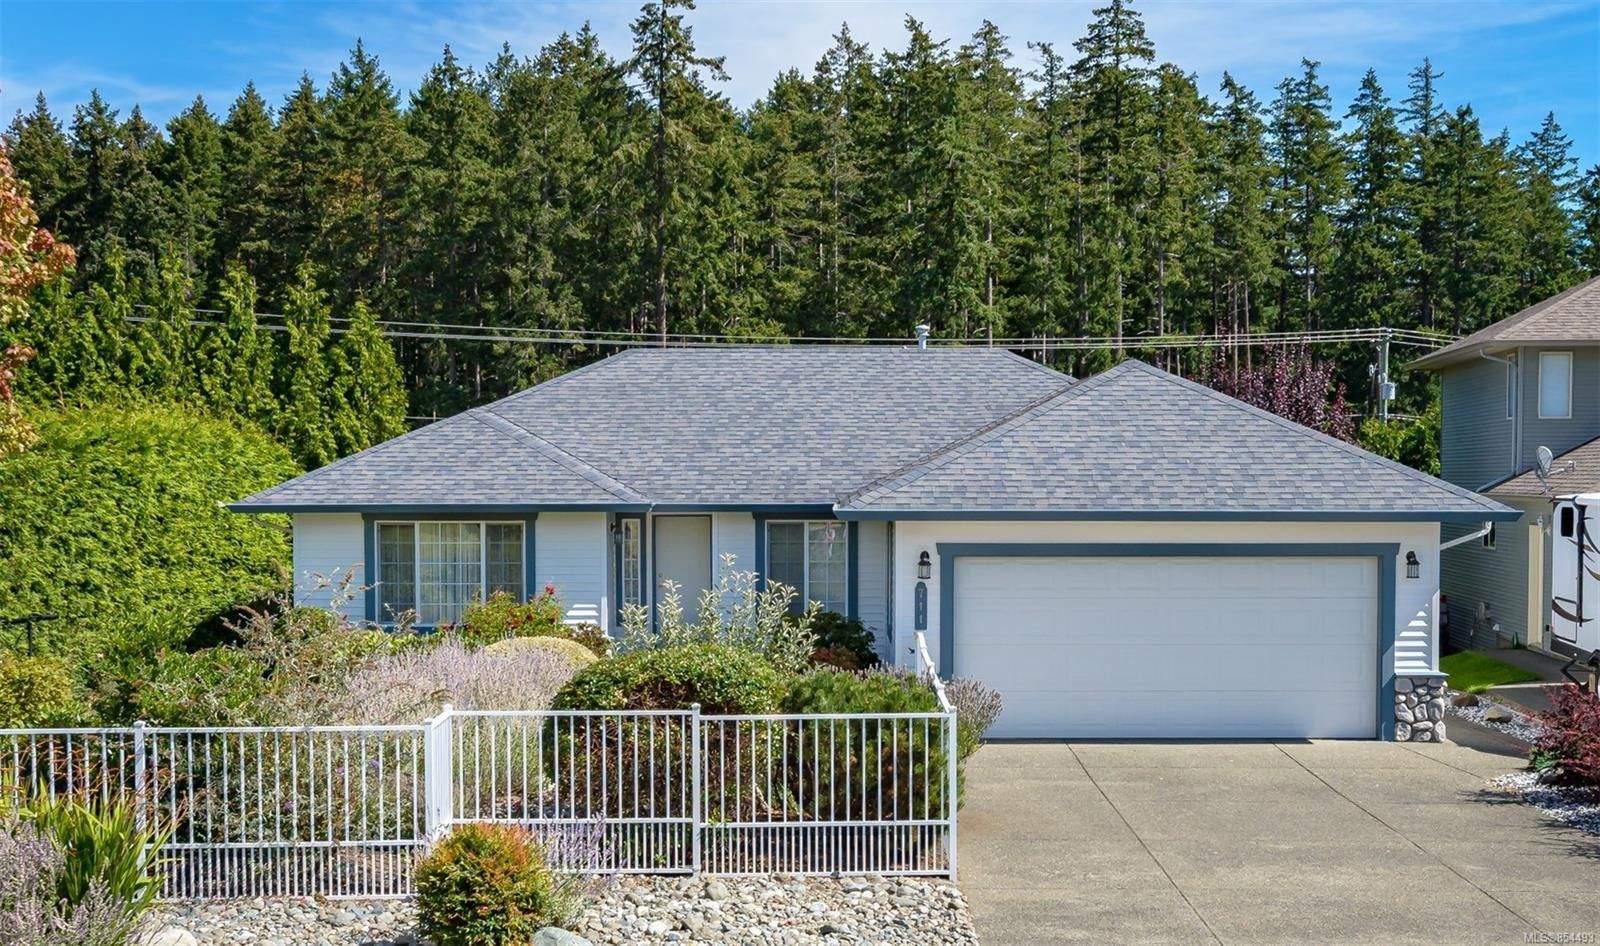 Main Photo: 711 Moralee Dr in : CV Comox (Town of) House for sale (Comox Valley)  : MLS®# 854493